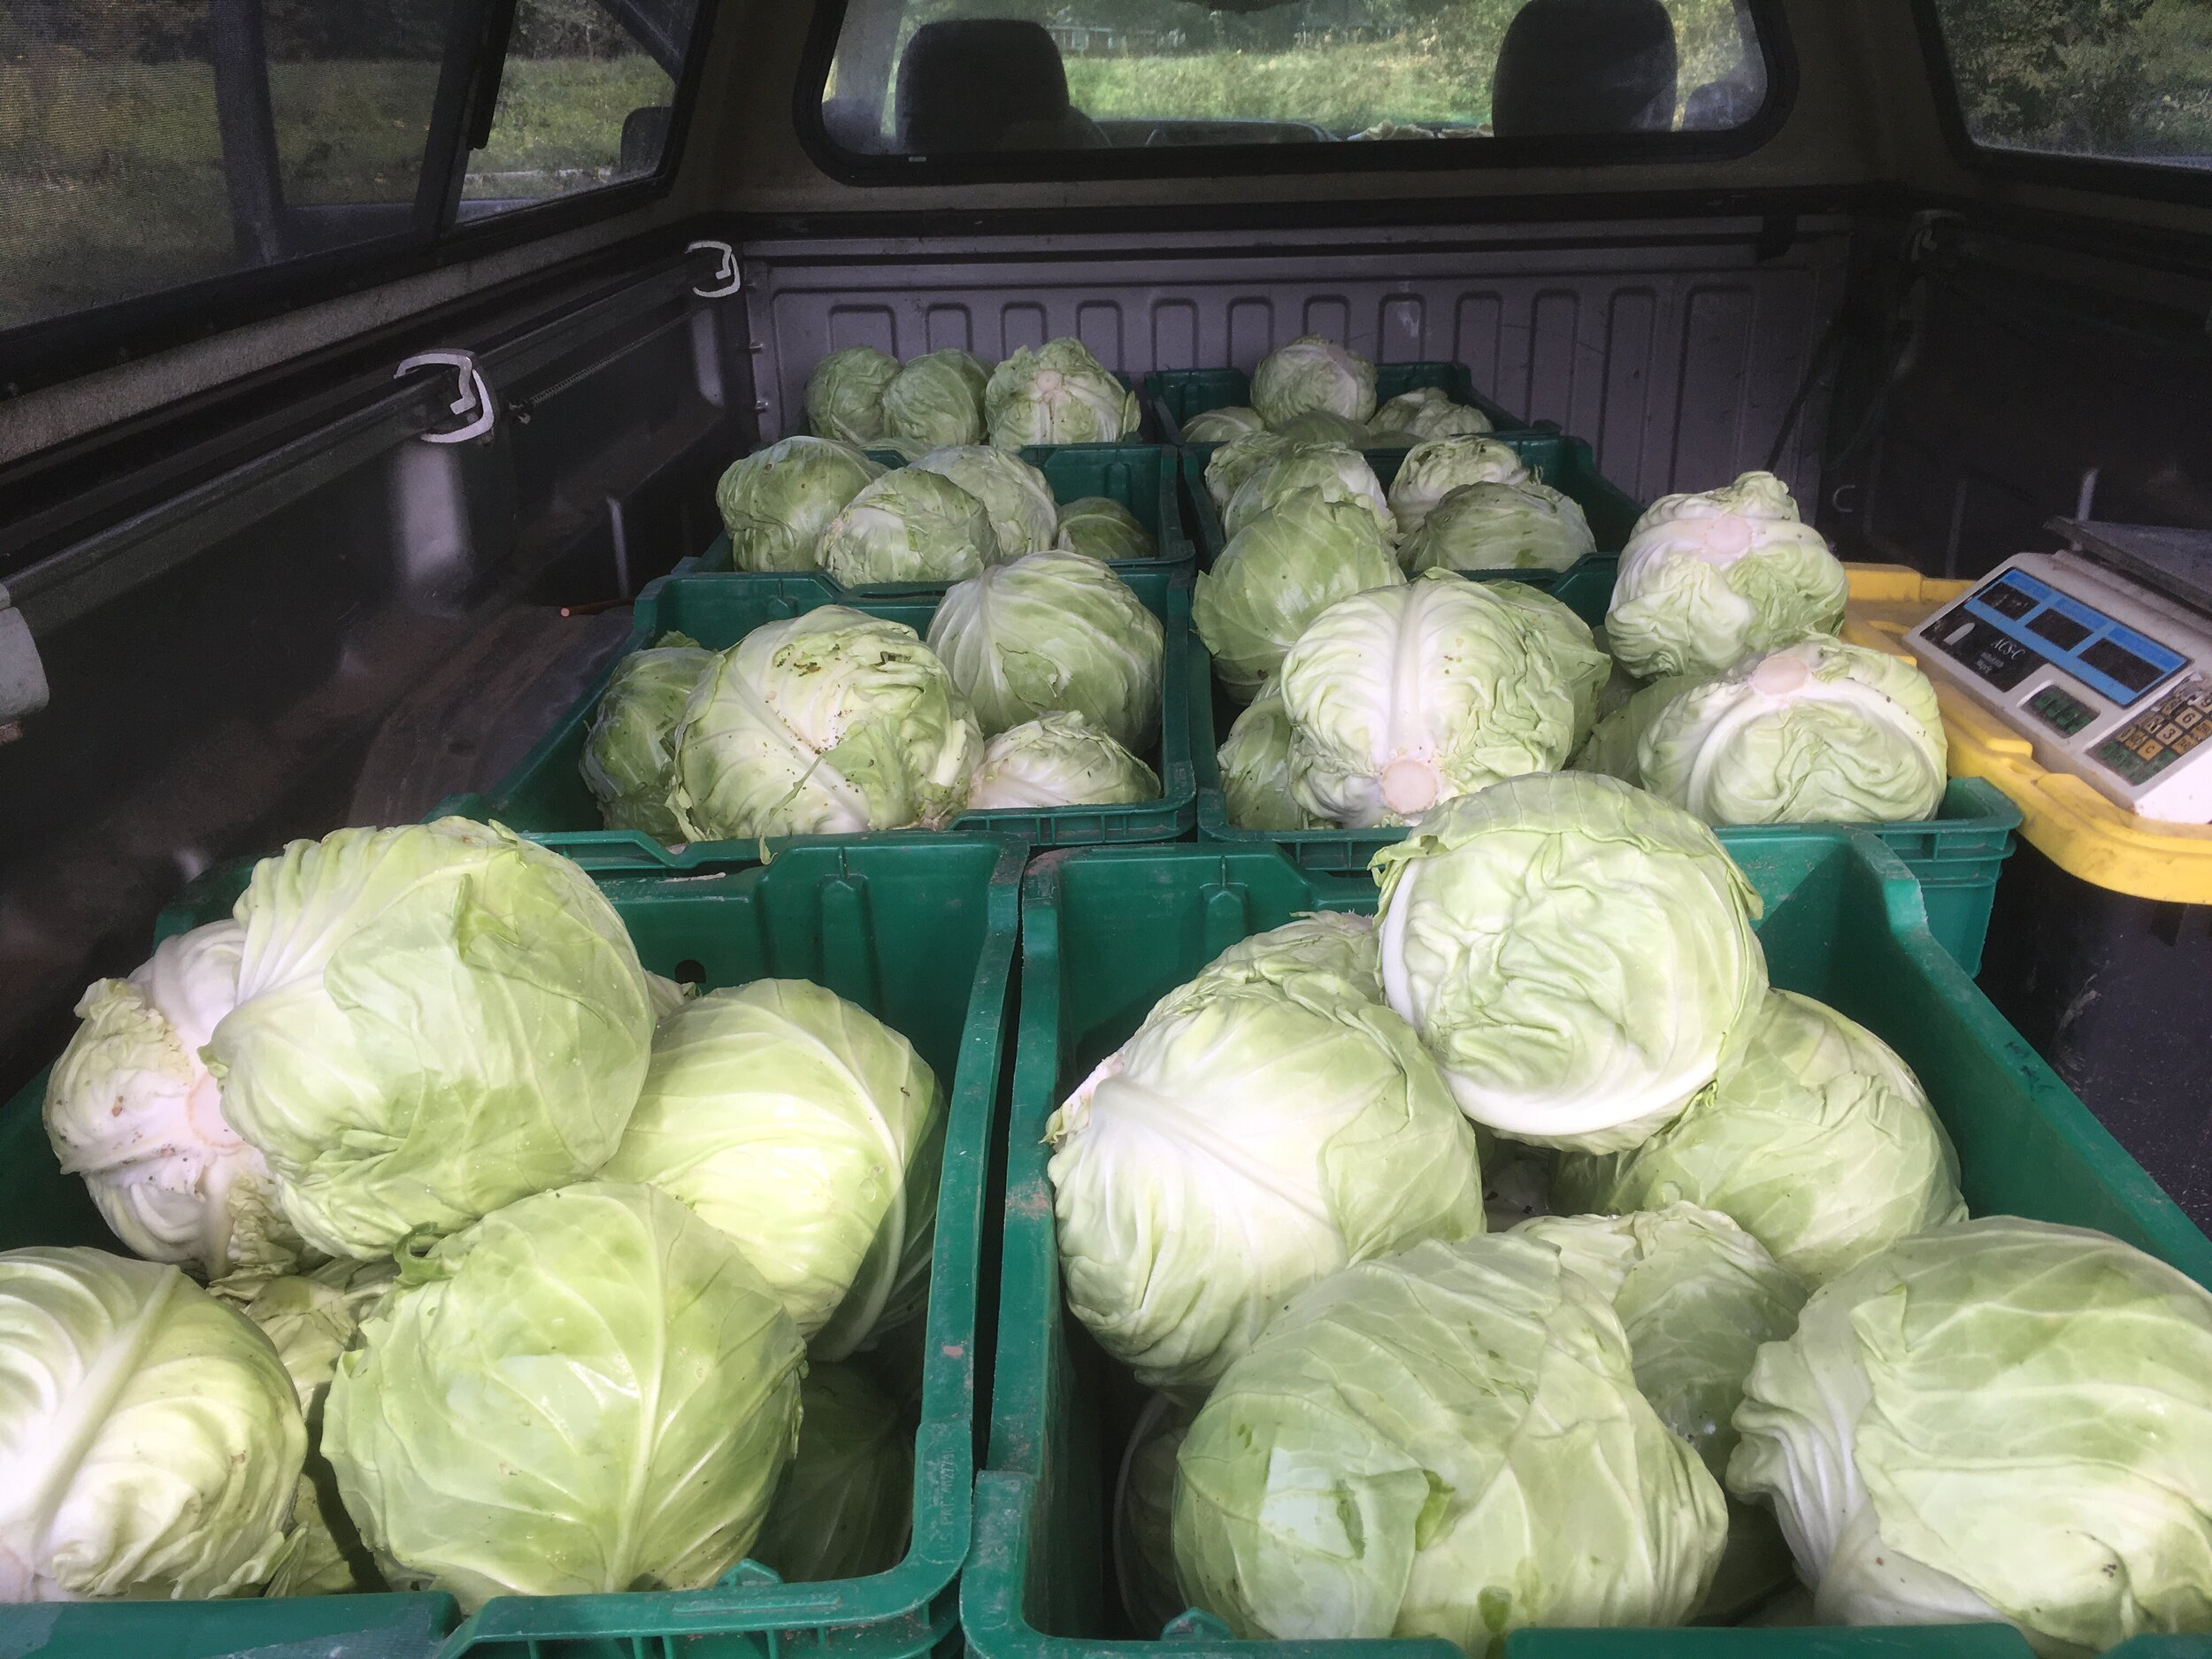 I partnered with the  Center for an Agricultural Economy  this year to provide fresh, local food for institutions throughout the state. I was excited for the opportunity and this particular 400# haul of green cabbage will be shredded for schools and hospitals in Vermont.